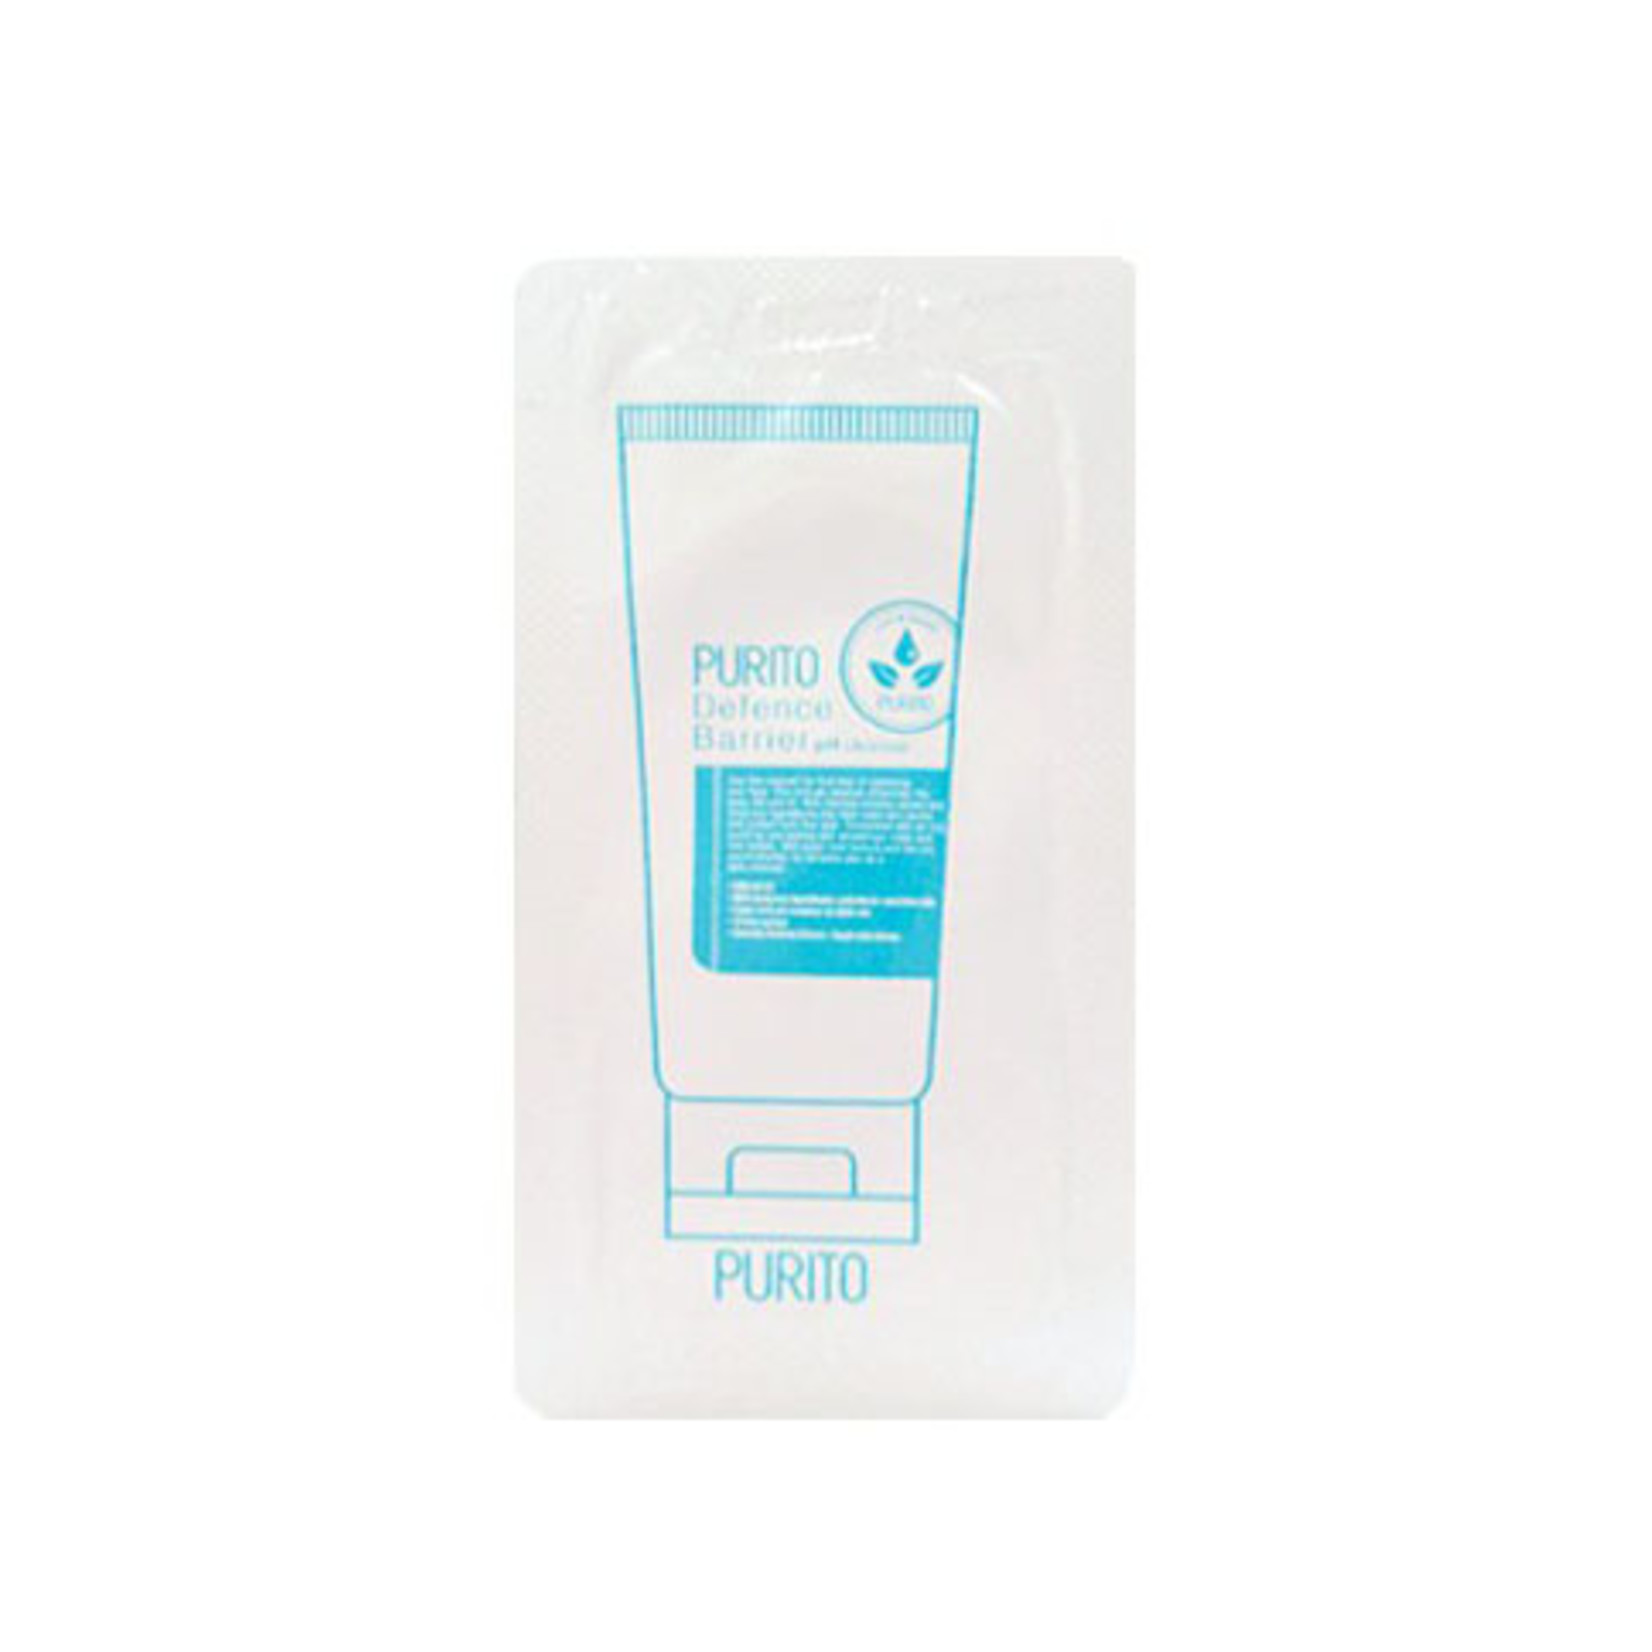 Purito Defence Barrier Ph Cleanser Sample 50pcs